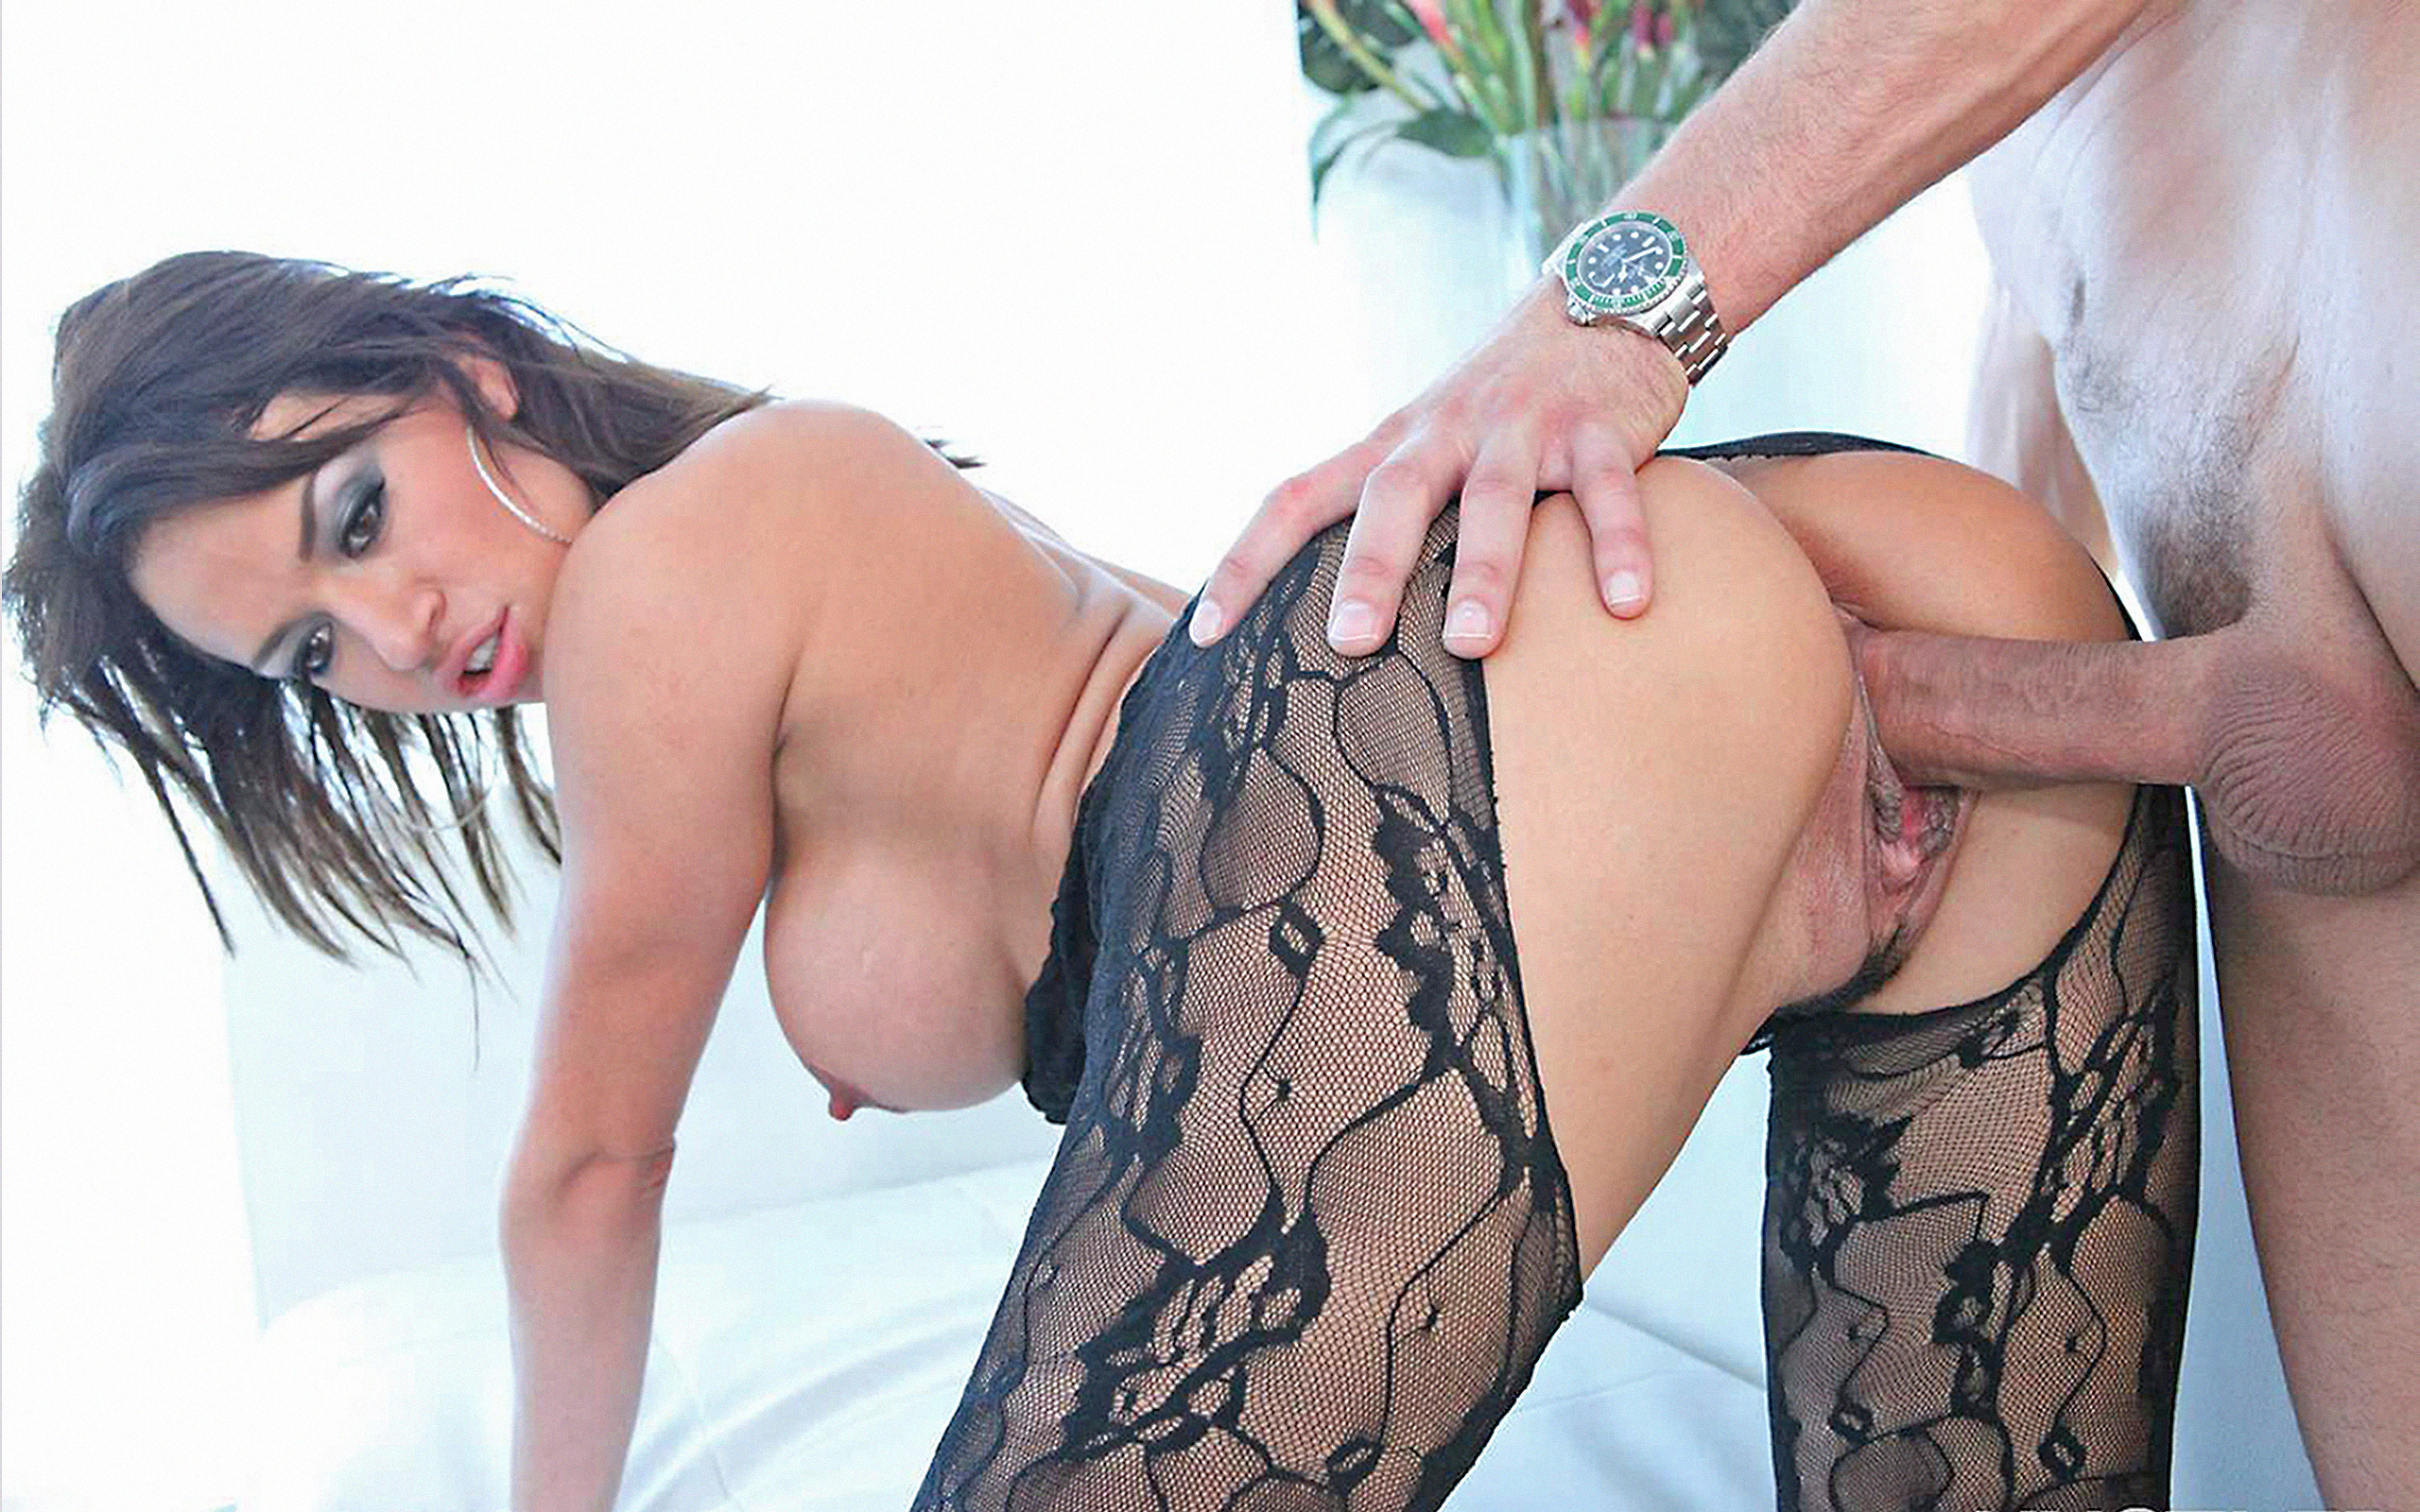 hot big tit tight pussy getting fucked